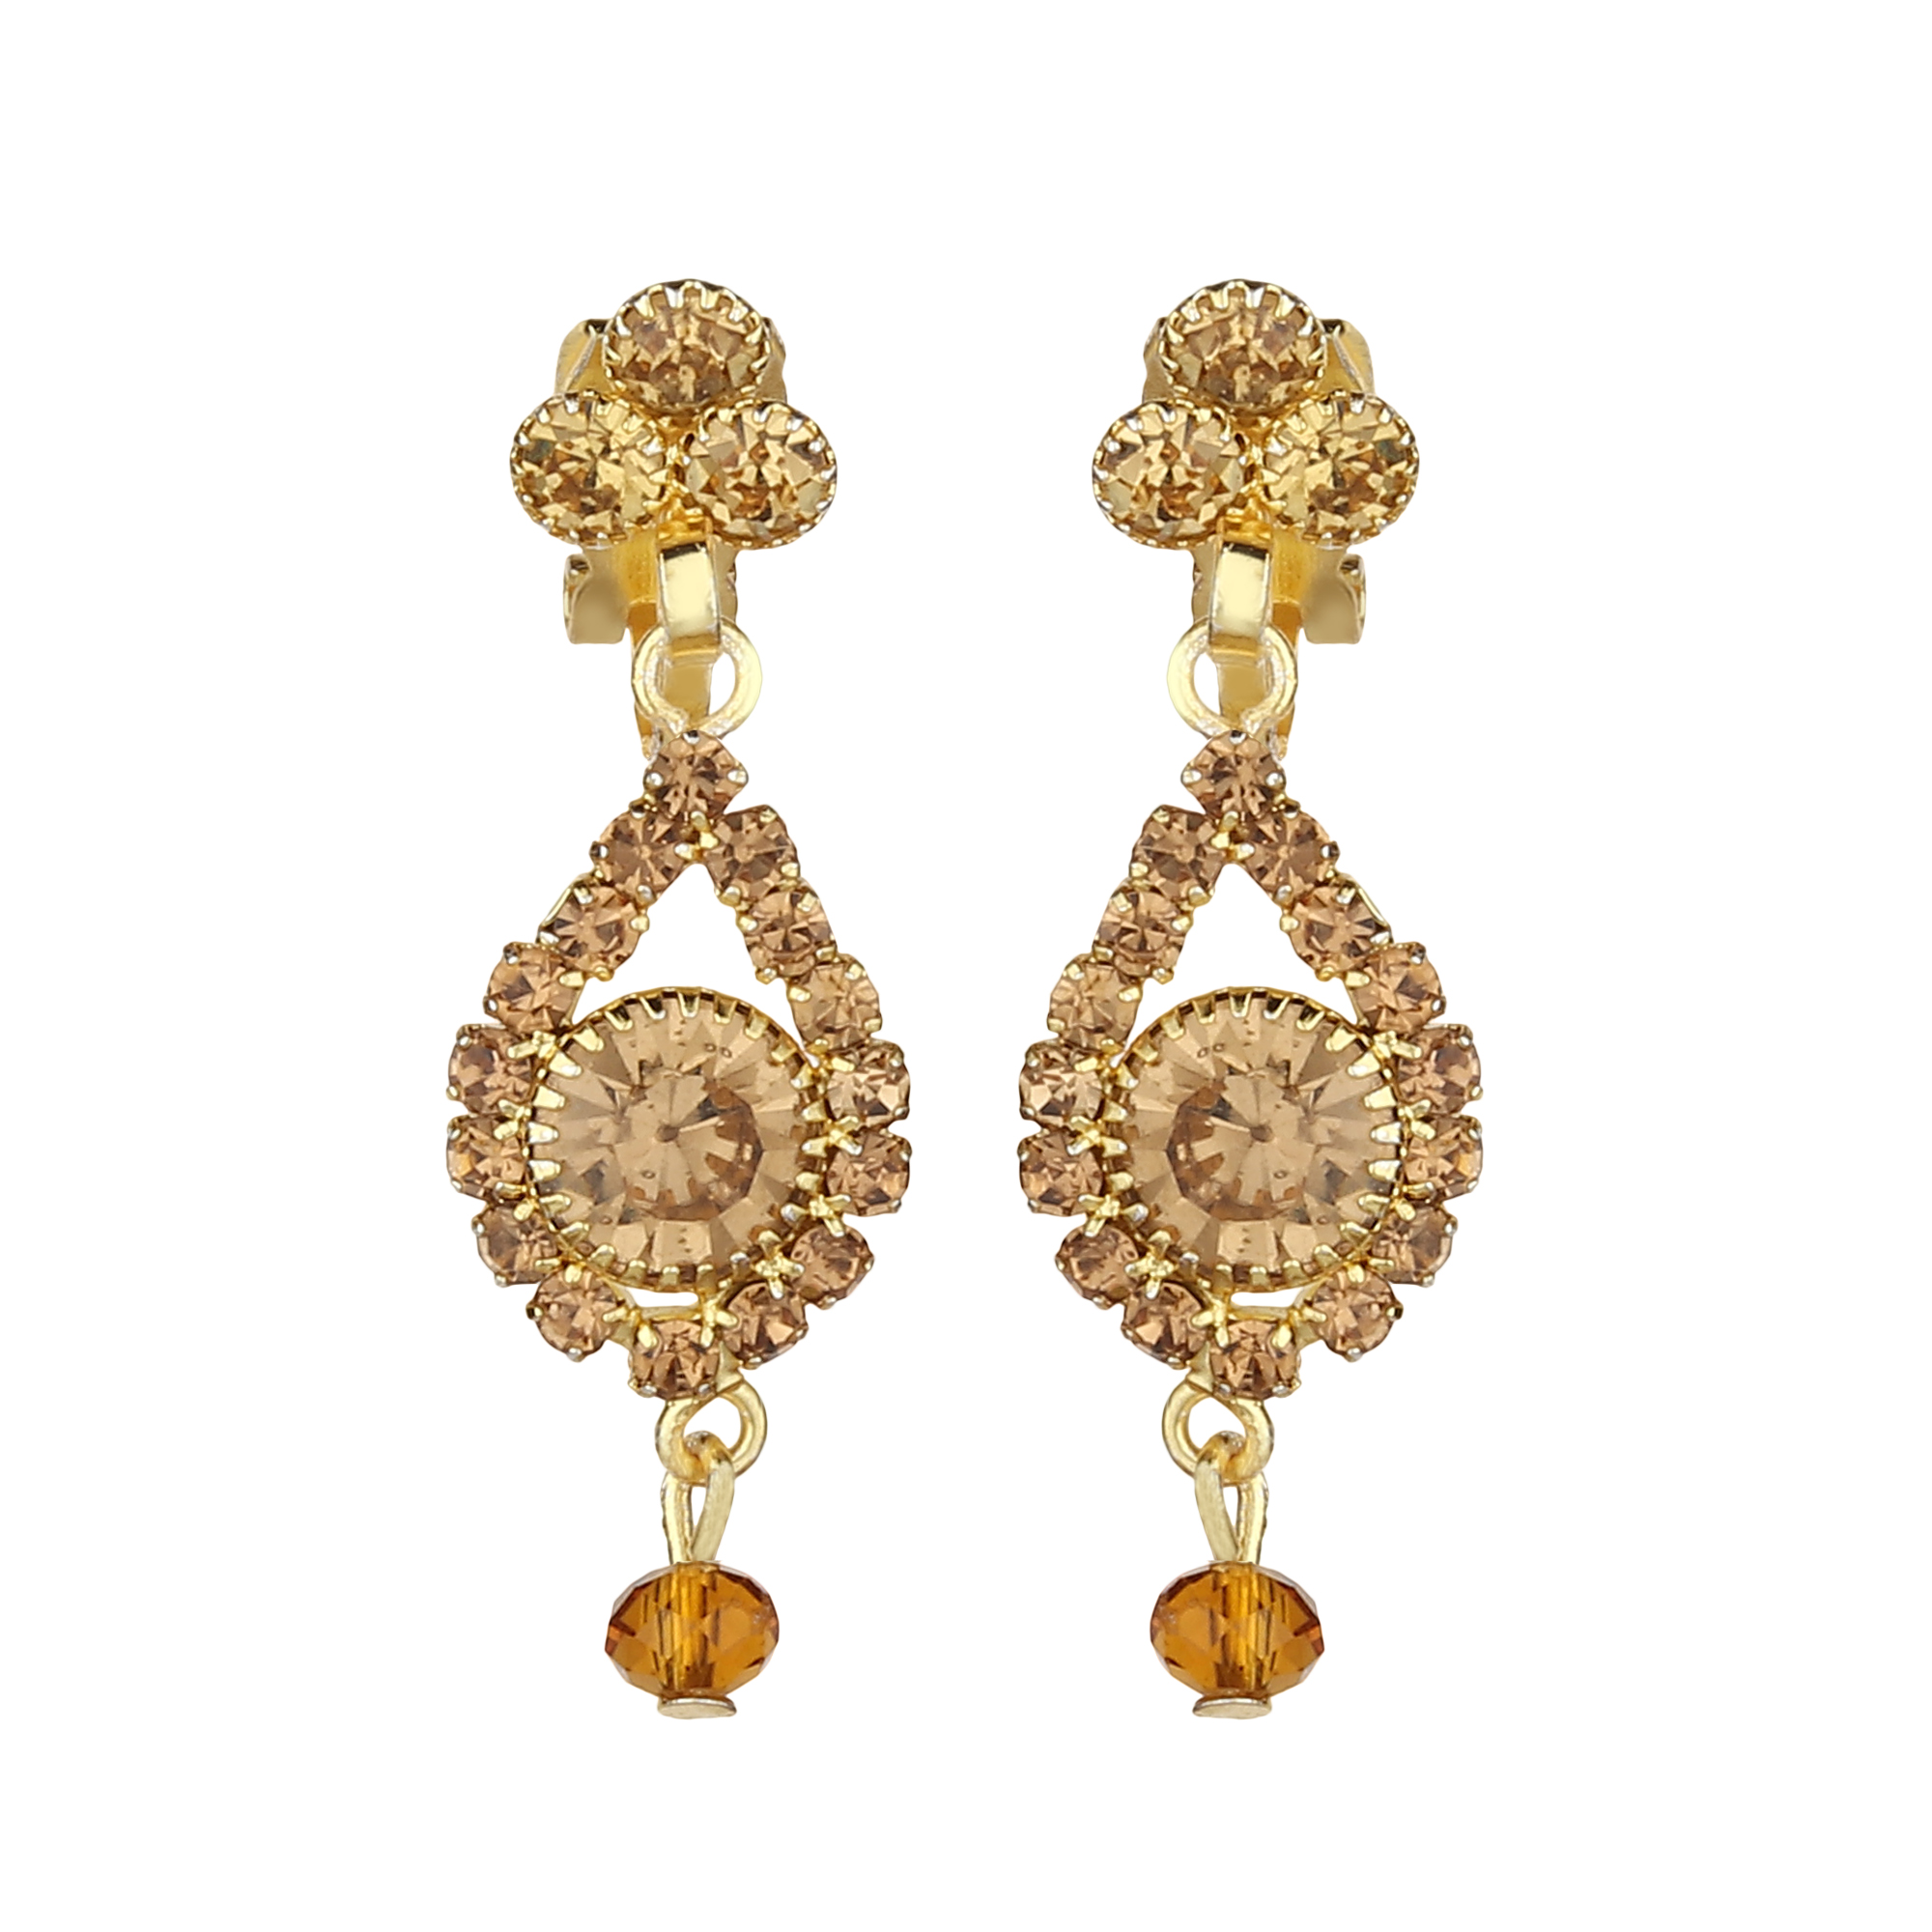 FirstBlush | FirstBlush Clip On Earrings for Non Piearced Ears for Women & Girls; Plating: Gold; Color: Gold; Size: 35 X 11mm; Wt.: 4gm. (MIEC104M173)